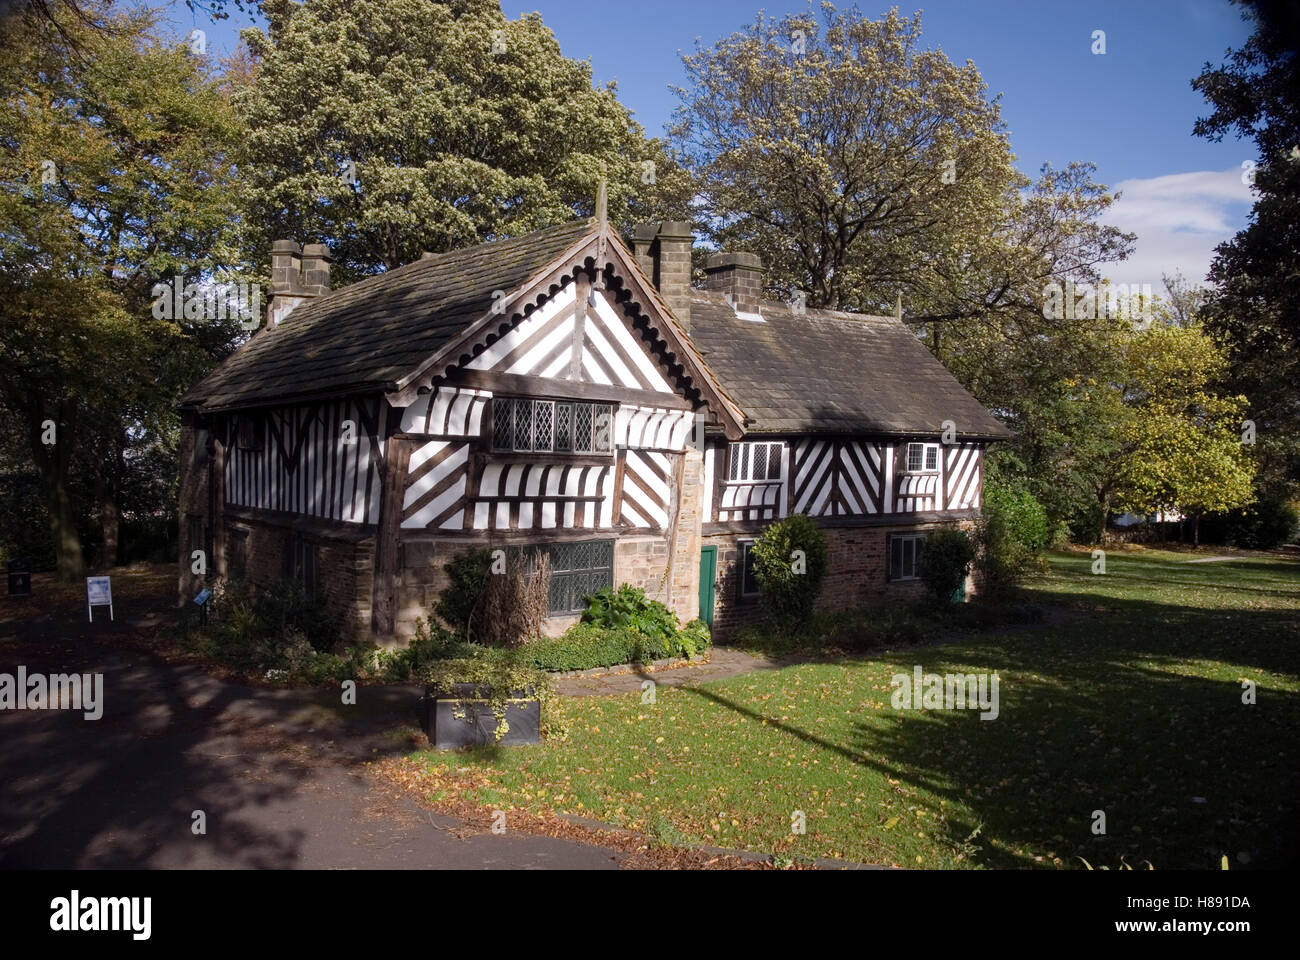 Sheffield, UK 22 Oct 2014: The Bishops' House on 22 Oct 2014 in Meersbrook Park, Sheffield, UK. A Tudor timber - Stock Image